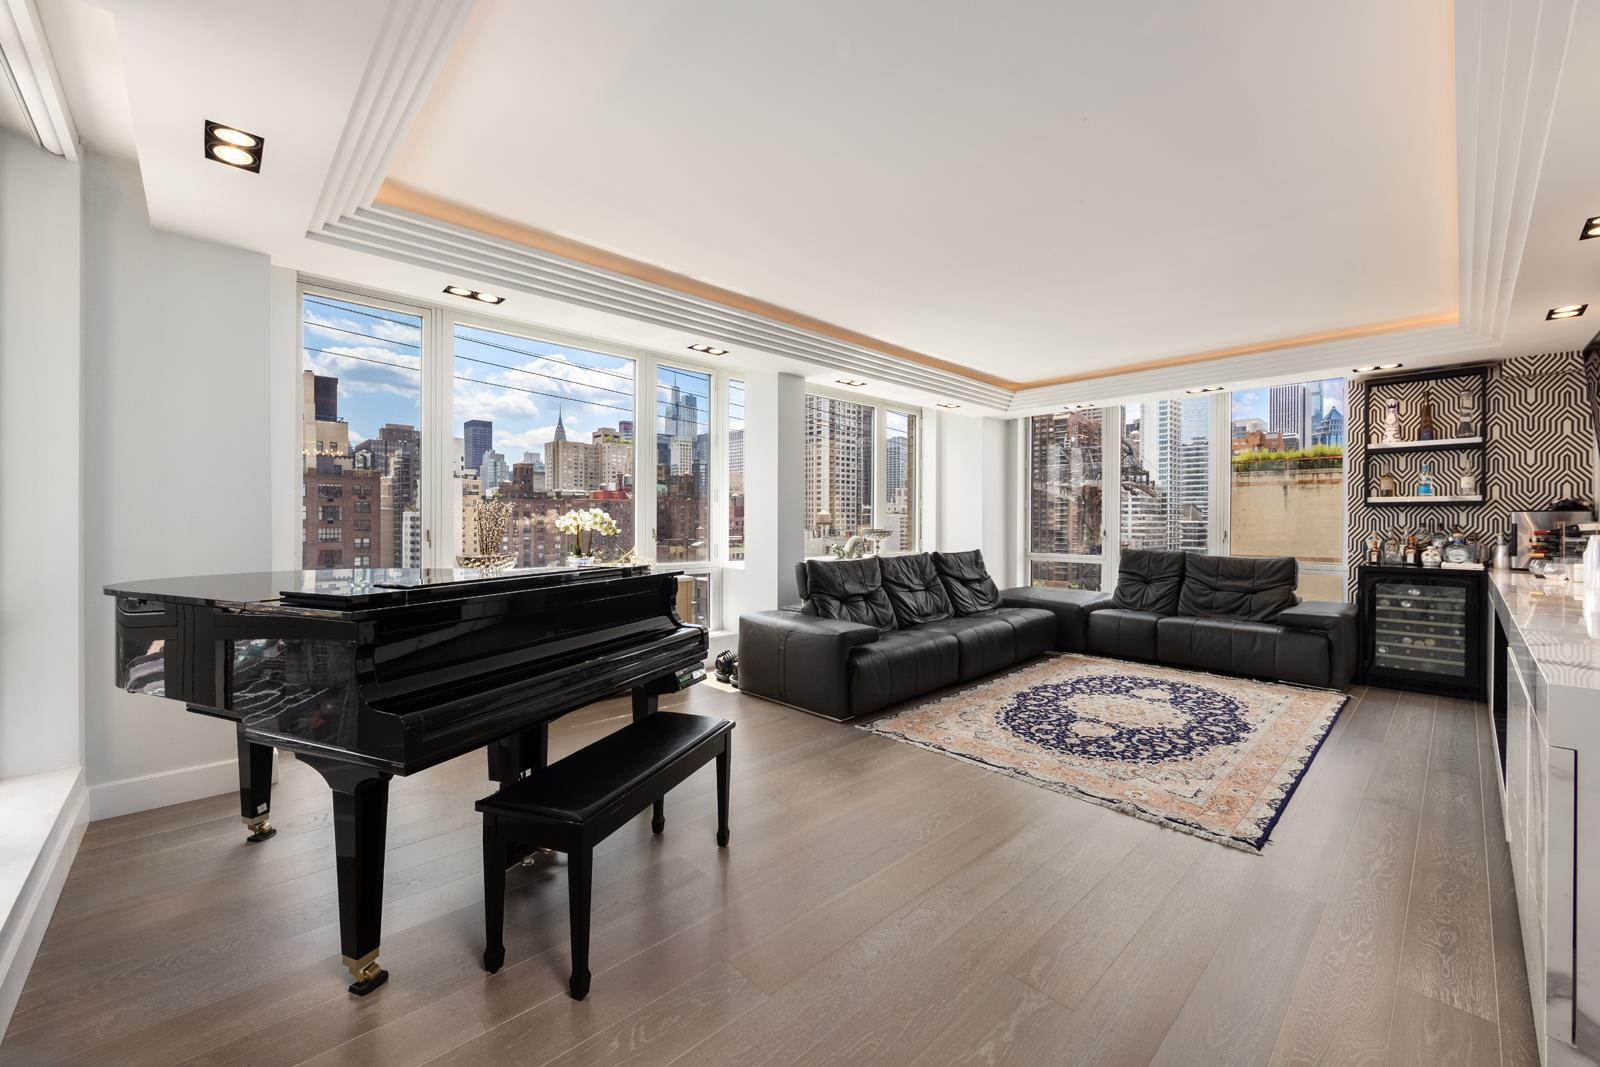 """Two of the most desired lines at Bridge Tower Condominium were masterfully merged and transformed creating a seamless combination and flow after a meticulous renovation to create every modern convenience and elegant standard of living for every Manhattan   homeowner.     A large entrance foyer, high ceilings, stunning moldings, a 35-foot long East, South & West-facing living and dining room delivers the ultimate backdrop for entertaining and daily living. 4 bedrooms, 4.5 bathrooms and an outstanding 2822 square feet of living   space and additional work-spaces are the beginning of what you have to look forward to.    Smart home technology that enrich the modern and luxurious ambiance comes complete with Cat6 networking wired throughout, an IT closet with a Sonos system and Nest Smart thermostats along with Nest Smart co2 smoke detectors. The Somfy electric wired shades   on all windows are sun sensor controlled which automatically lower if the sun is too bright. They can also be easily adjusted with your Smart phone or remote control.    Enjoy exceptional sunlight provided by the dramatic South, East and West exposures which deliver sweeping views from your new floor to ceiling windows where one can see downtown Manhattan, the East River, the Chrysler Building, the Manhattan skyline and the   Queensboro Bridge.     And there's so much more! Select European white oak floors, 7"""" wide and 7 ft. long. Trimless LED lights in the ceilings throughout the entire home, and vent less built in 46"""" ethanol fireplaces in the living room and master bedroom. All bathrooms have full   height stab porcelain walls and floors along with Smart toilets. Custom cabinetry in all bedrooms and closets, HVAC covers and bathroom vanities were all imported.    The windowed sleek Chef's kitchen is impeccably appointed with custom cabinets imported from Europe and made of riff cut white oak, Wolf 4 burner and center infrared char broiler, Wolf ceiling mounted outside venting hood, electronic pus"""